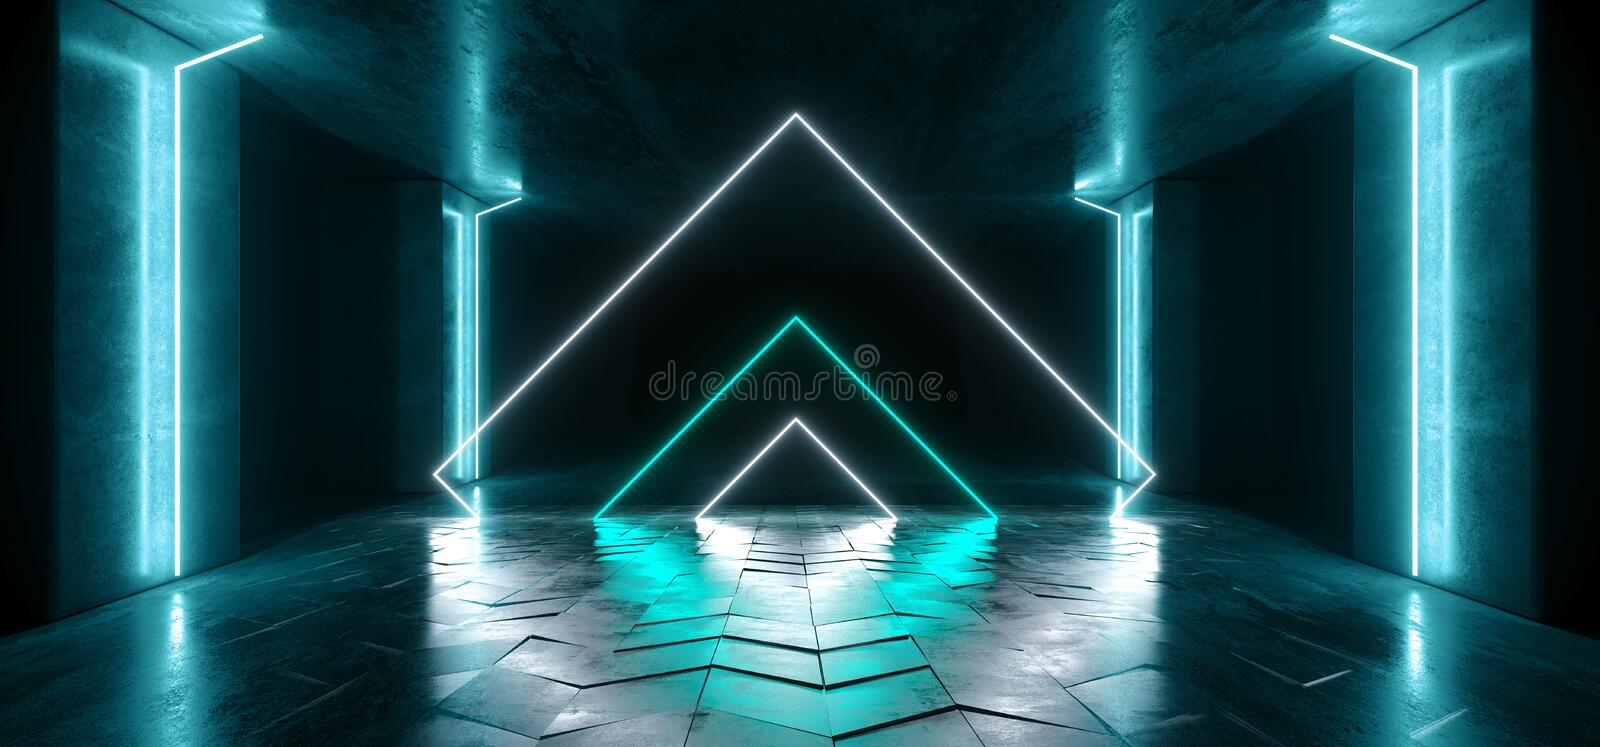 Neon Lights Triangle  Graphic Glowing Blue Vibrant Virtual Sci Fi Futuristic Tunnel Studio Stage Construction Garage Podium royalty free illustration